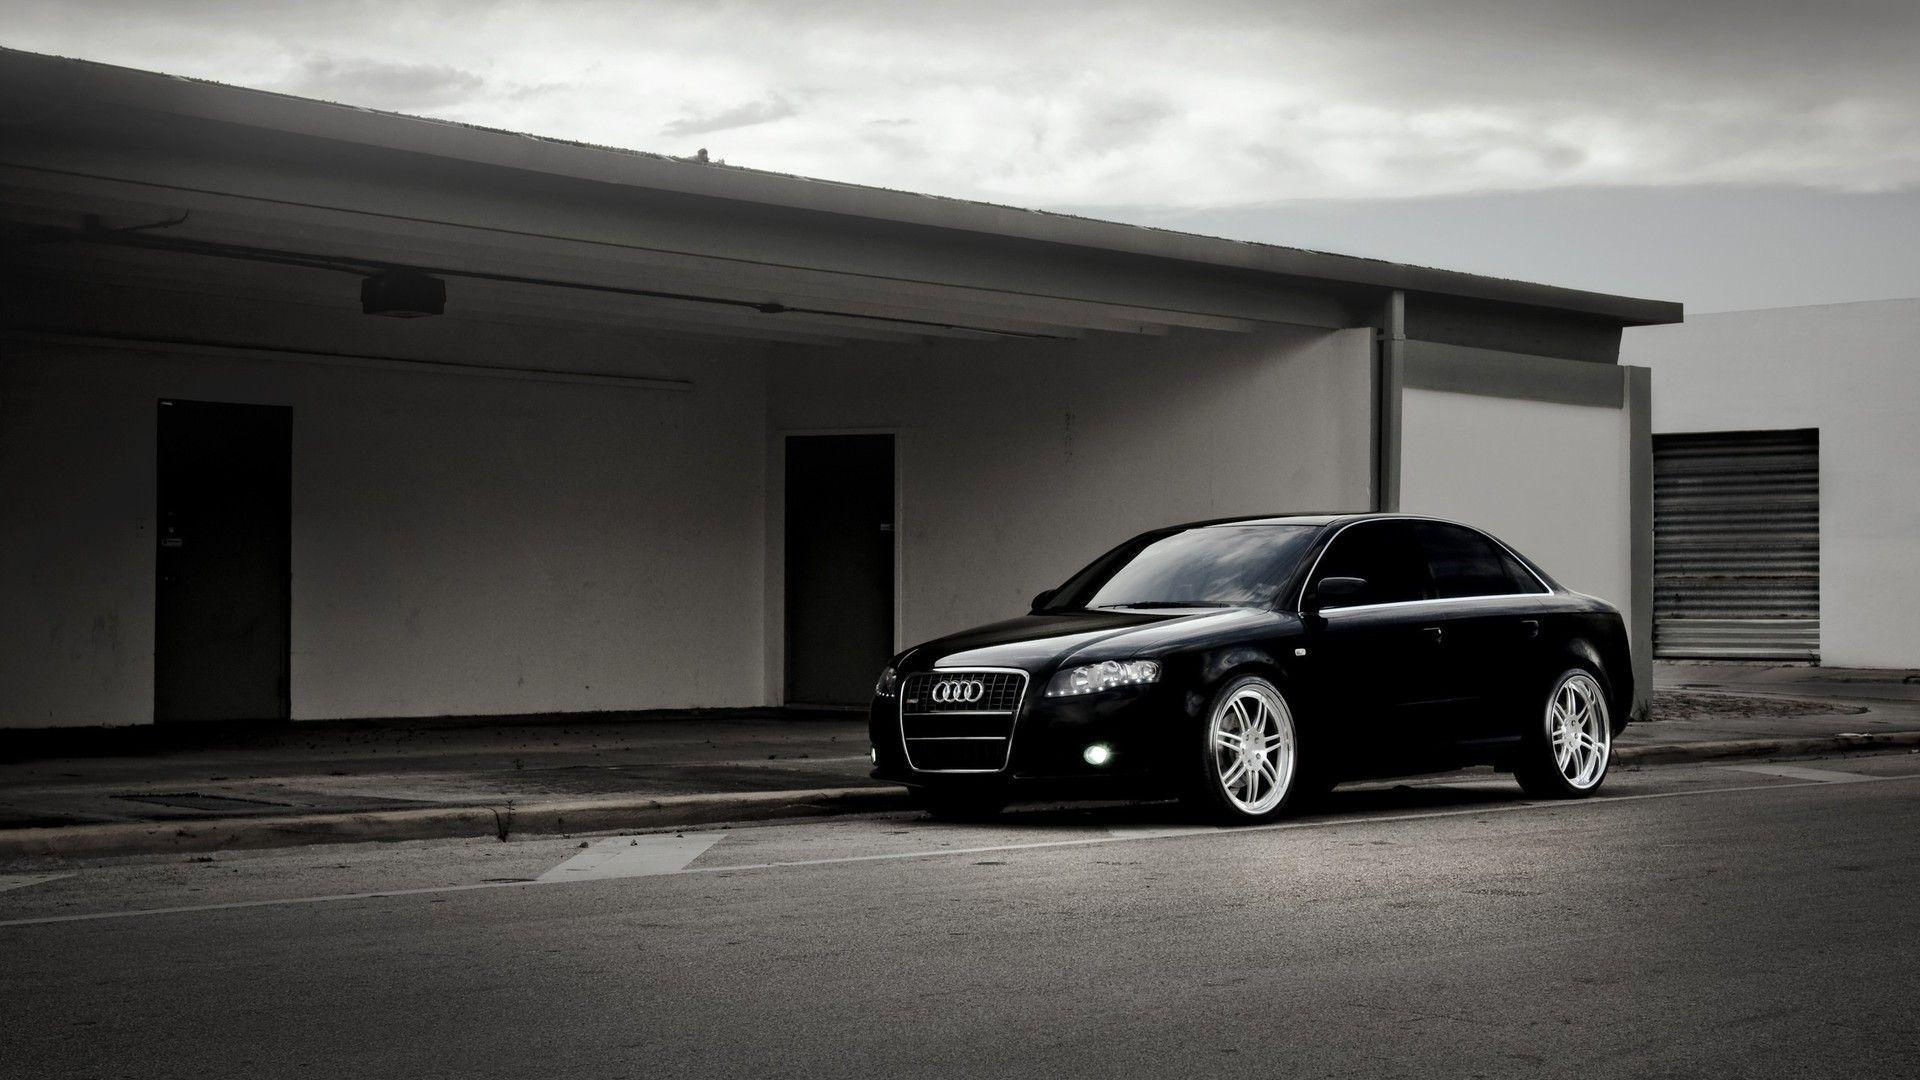 Audi A4 Wallpapers High Quality Resolution : Cars Wallpapers